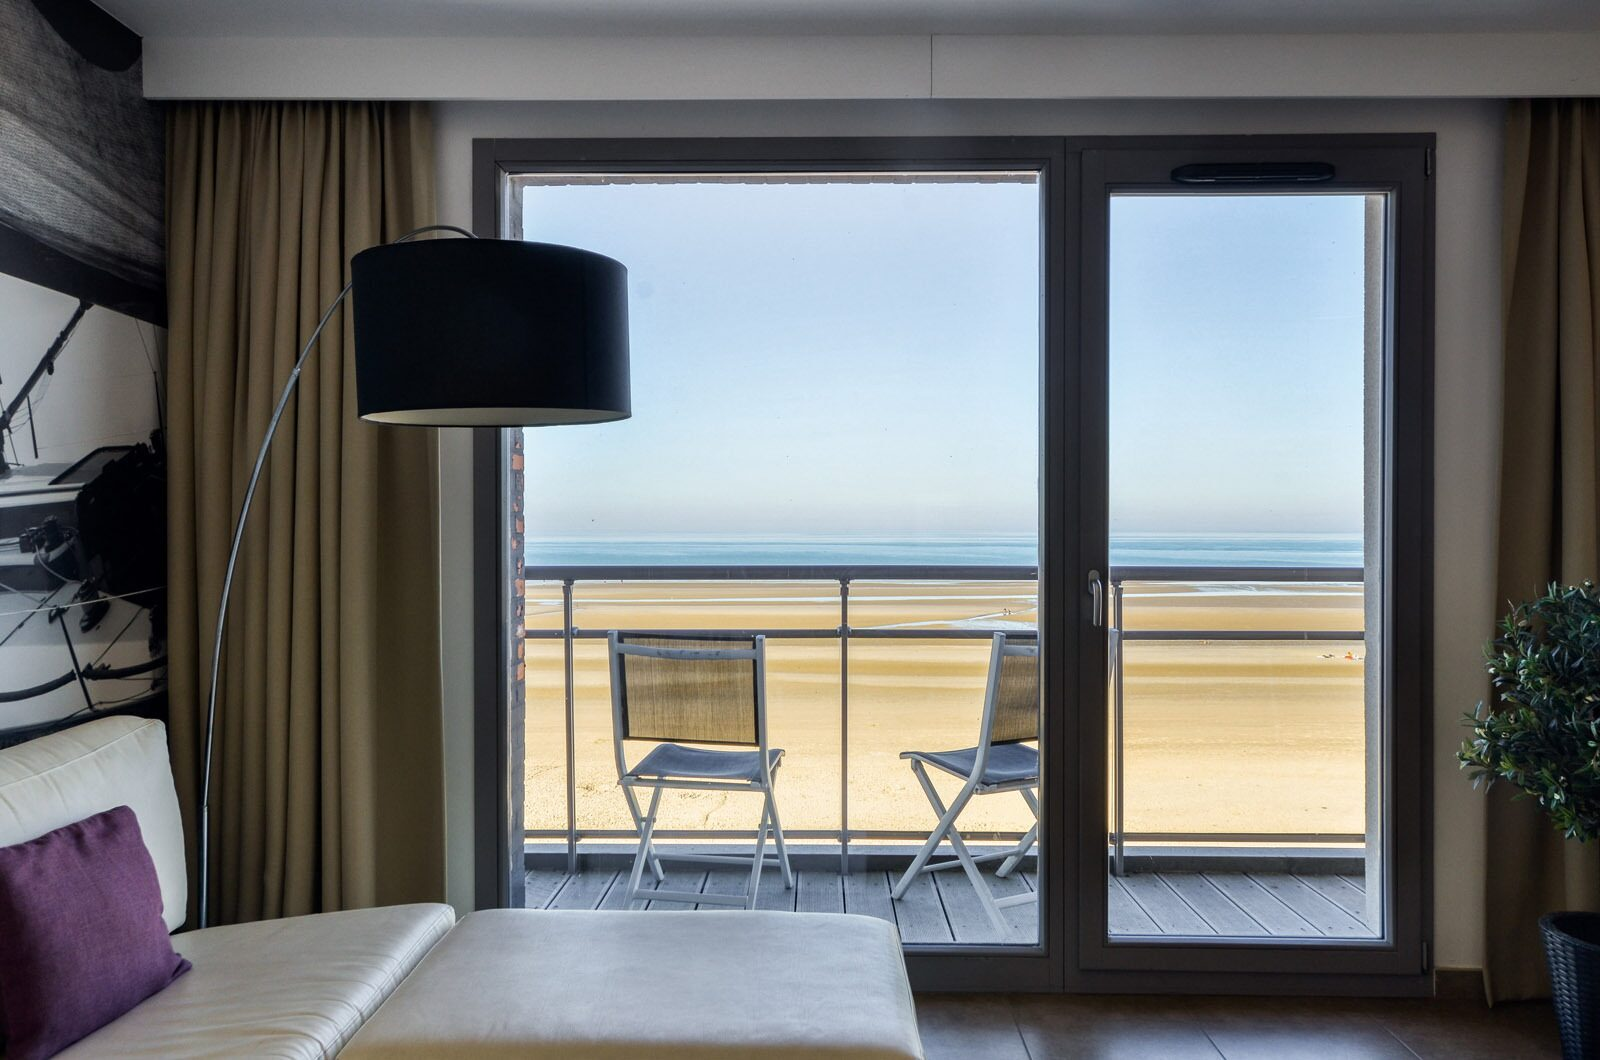 Wake up with a stunning seaview